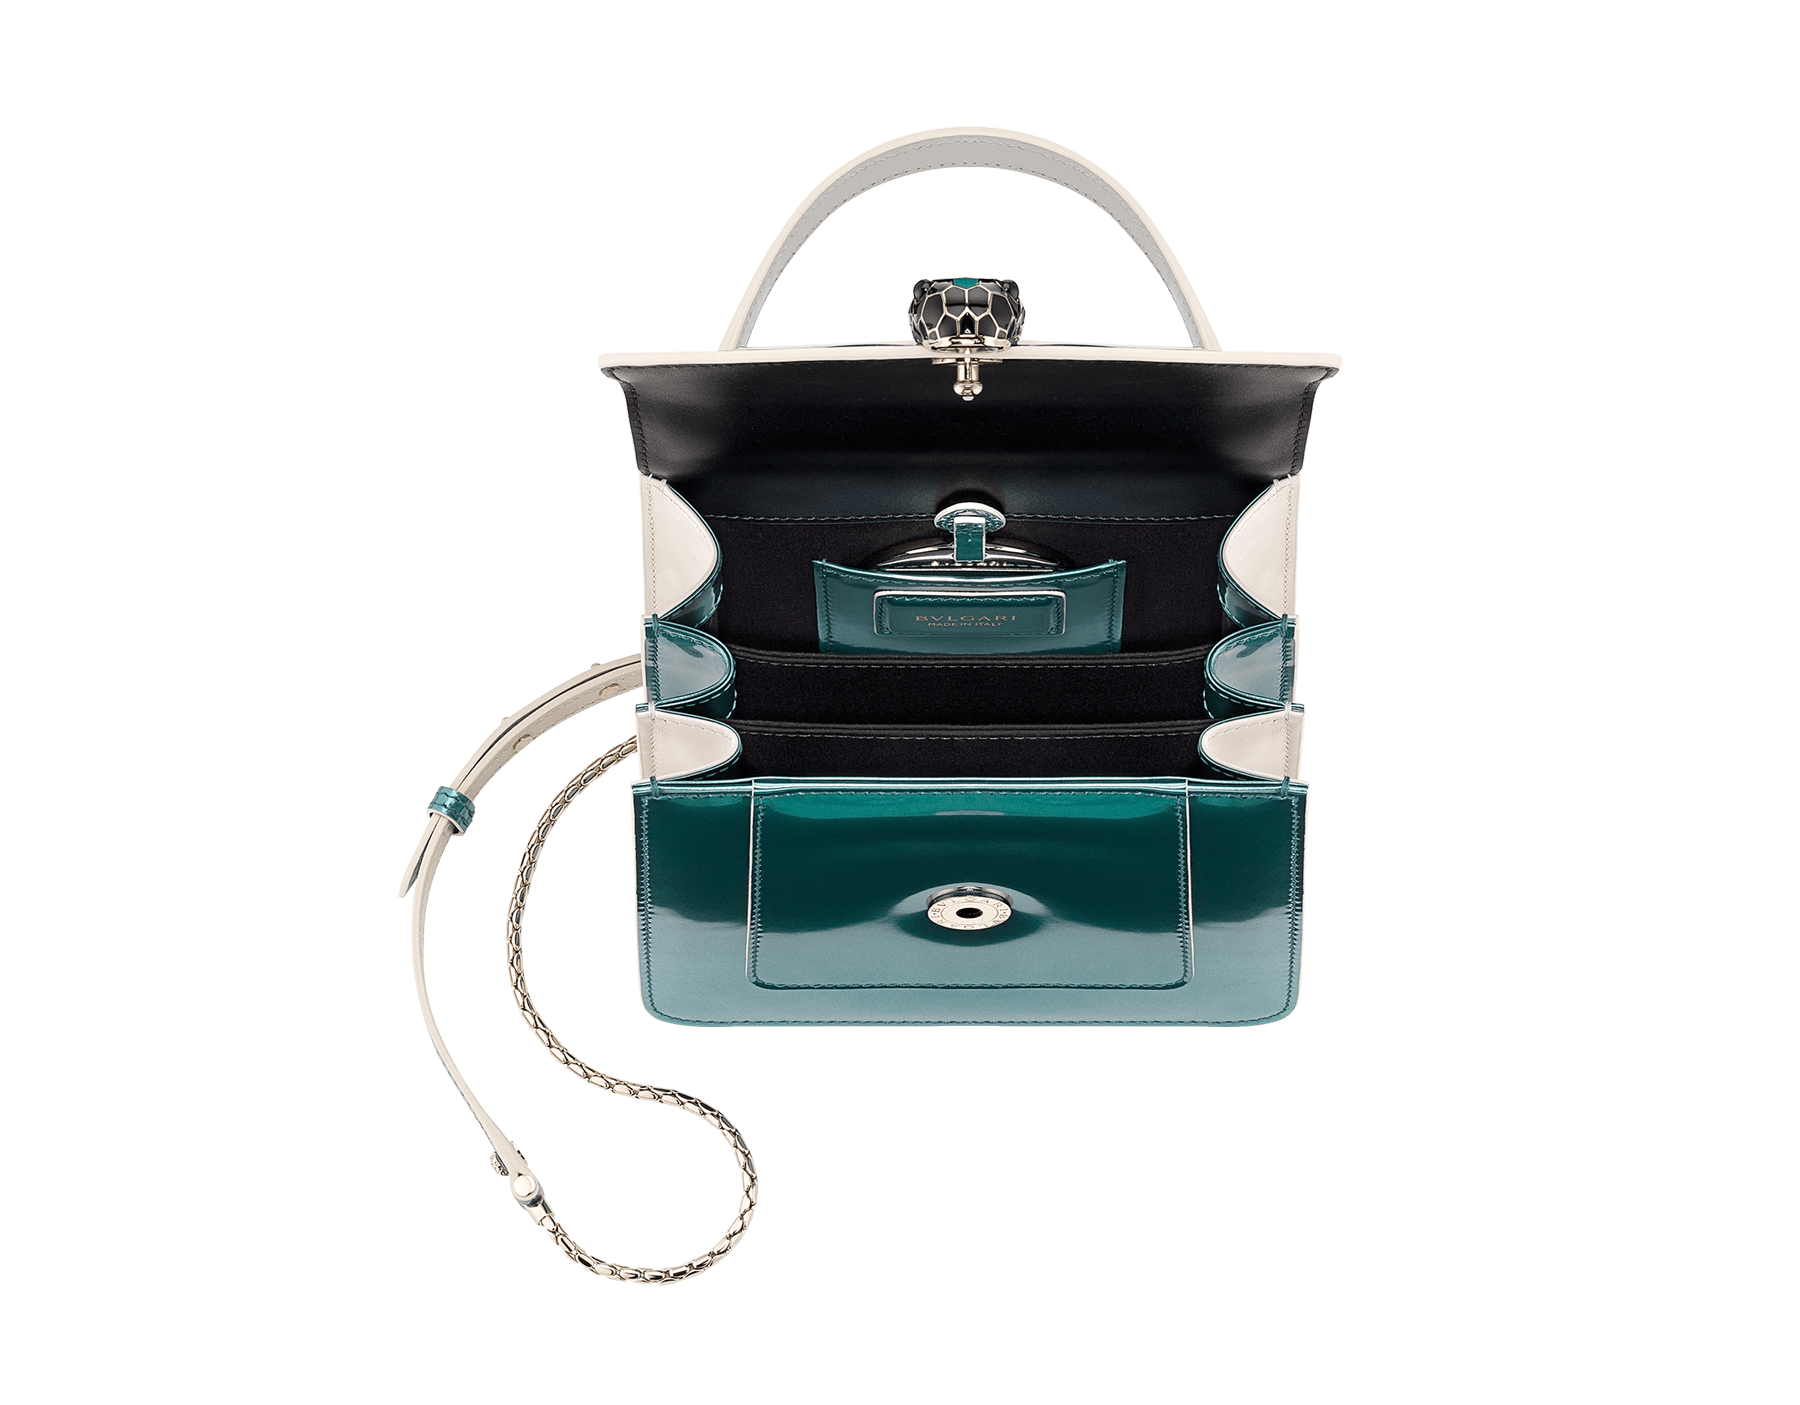 """Serpenti Forever "" crossbody bag in brushed metallic arctic jade calf leather body and brushed metallic arctic jade calf leather and white agate calf leather sides. Iconic snakehead closure in light gold plated brass enriched with black and arctic jade enamel and black onyx eyes. 289485 image 4"